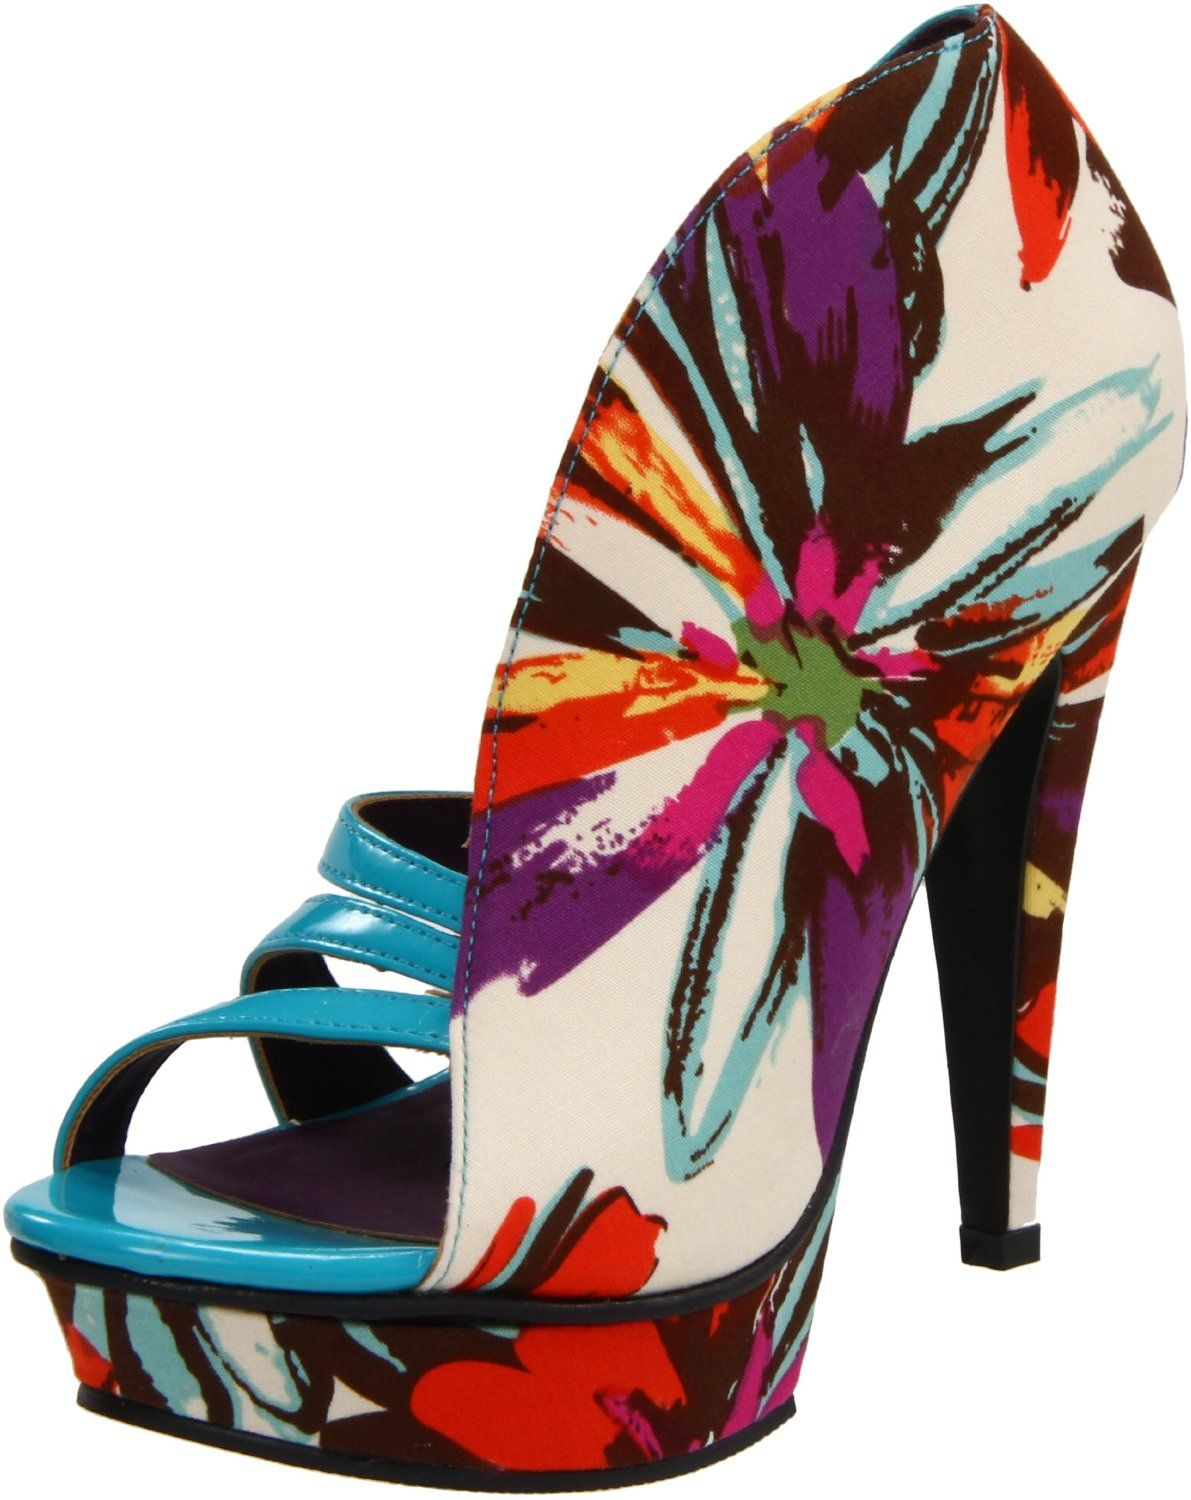 This shoe is awesome! Michael Antonio Women's Taft Platform Sandal -  endless.com